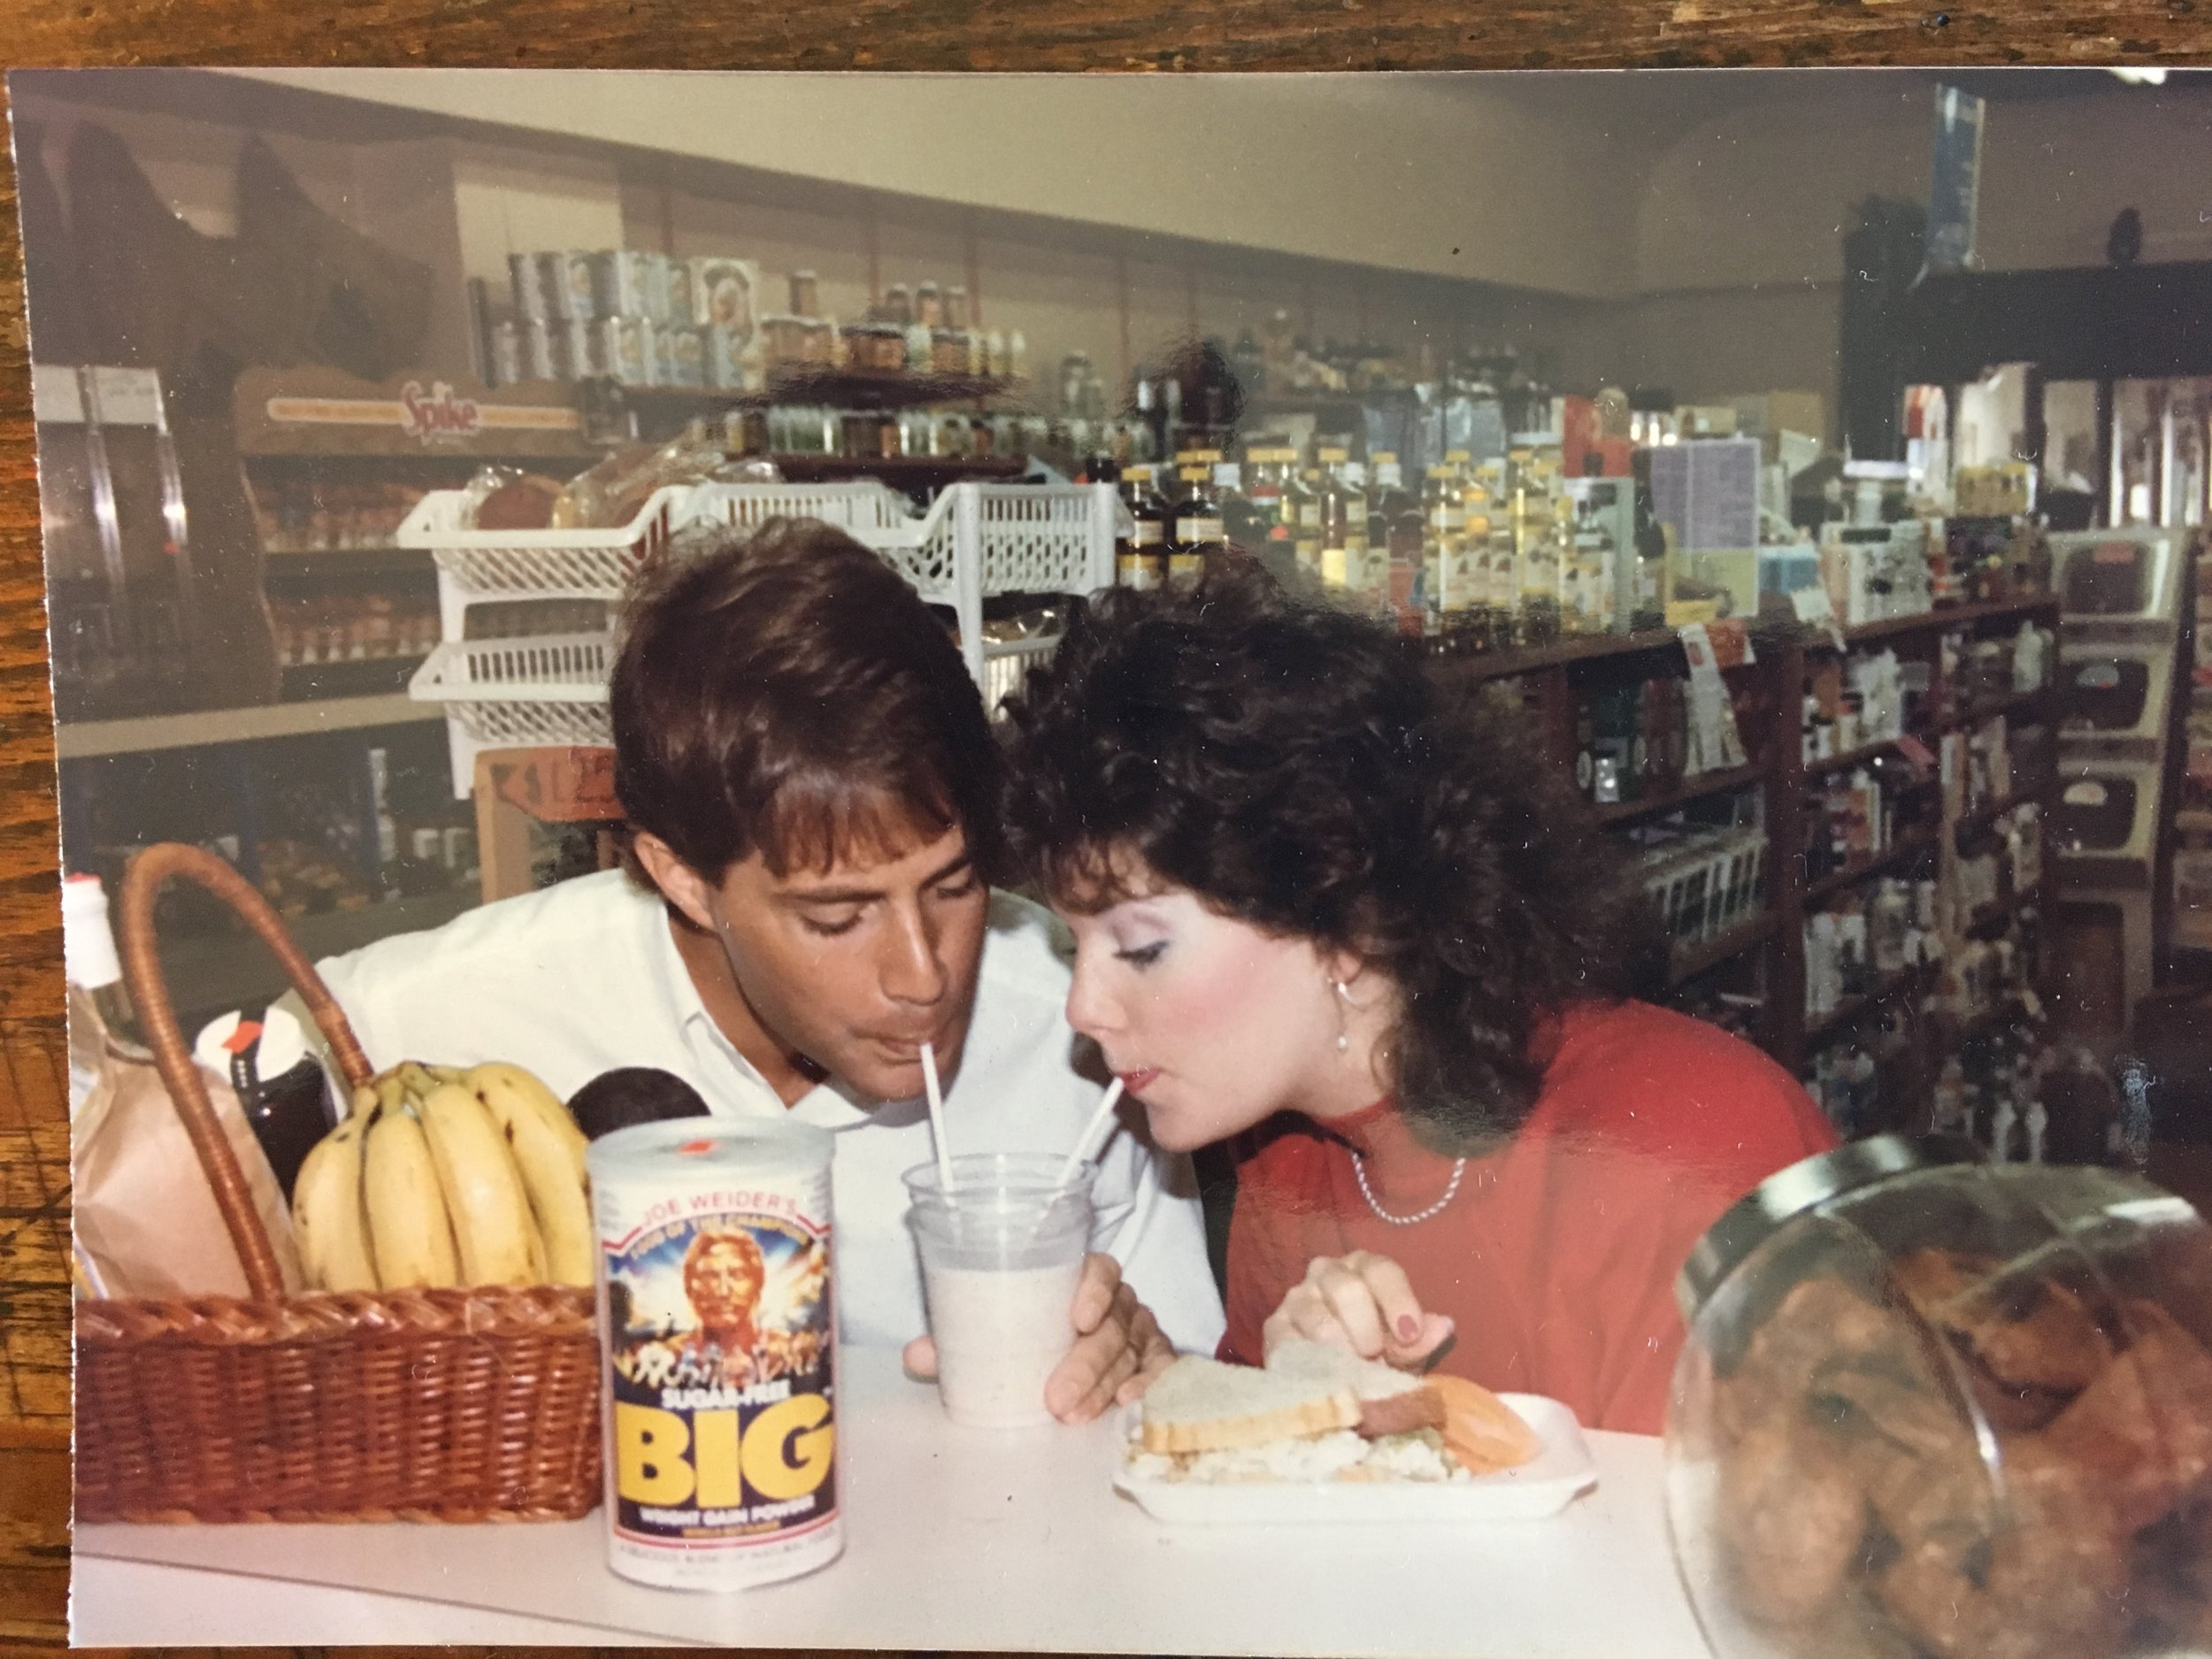 Old photo from the Health Food Store on Hilton Head in 1986.